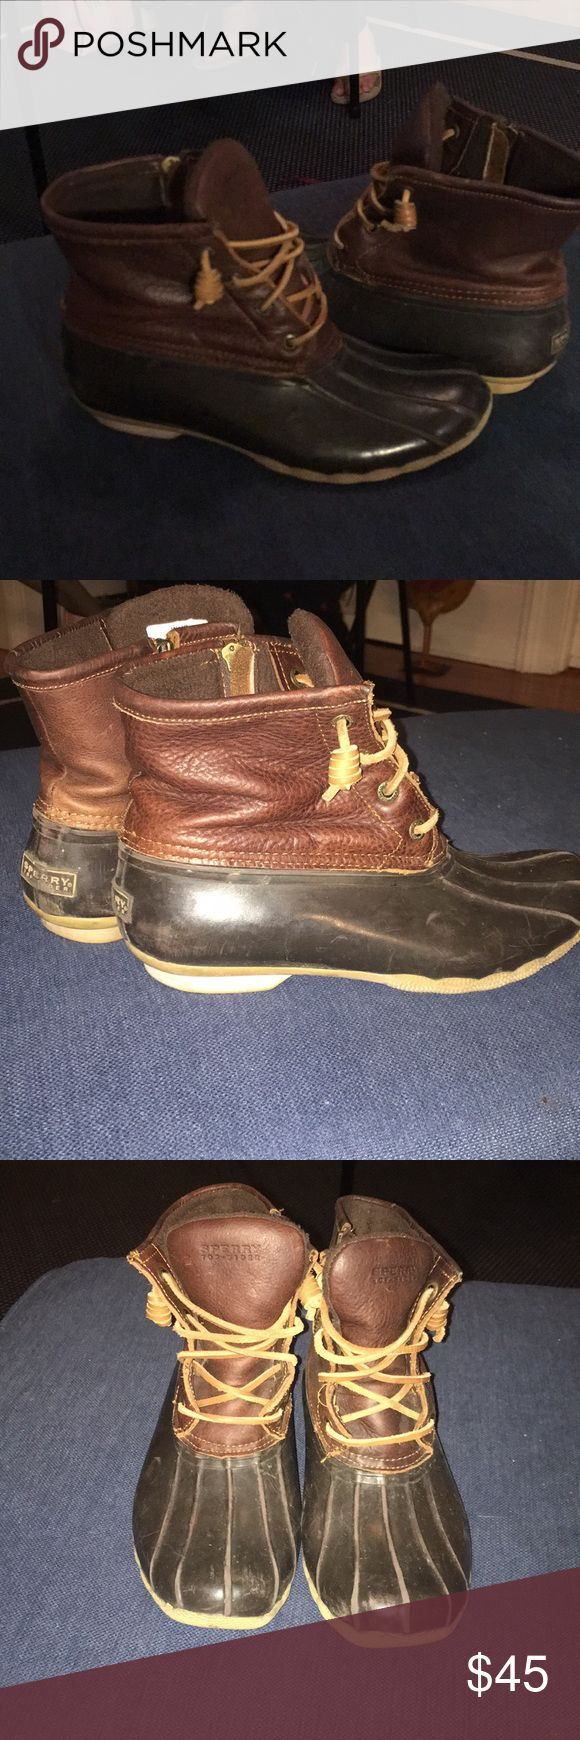 Sperry Women's Saltwater Duck Boot Women's Size 7 Sperry Duck Boots for sale! They have obviously been worn, with a couple of scratches on them (as you can see in the pictures). Great waterproof shoes! Let me know if you have any questions! Sperry Shoes Winter & Rain Boots